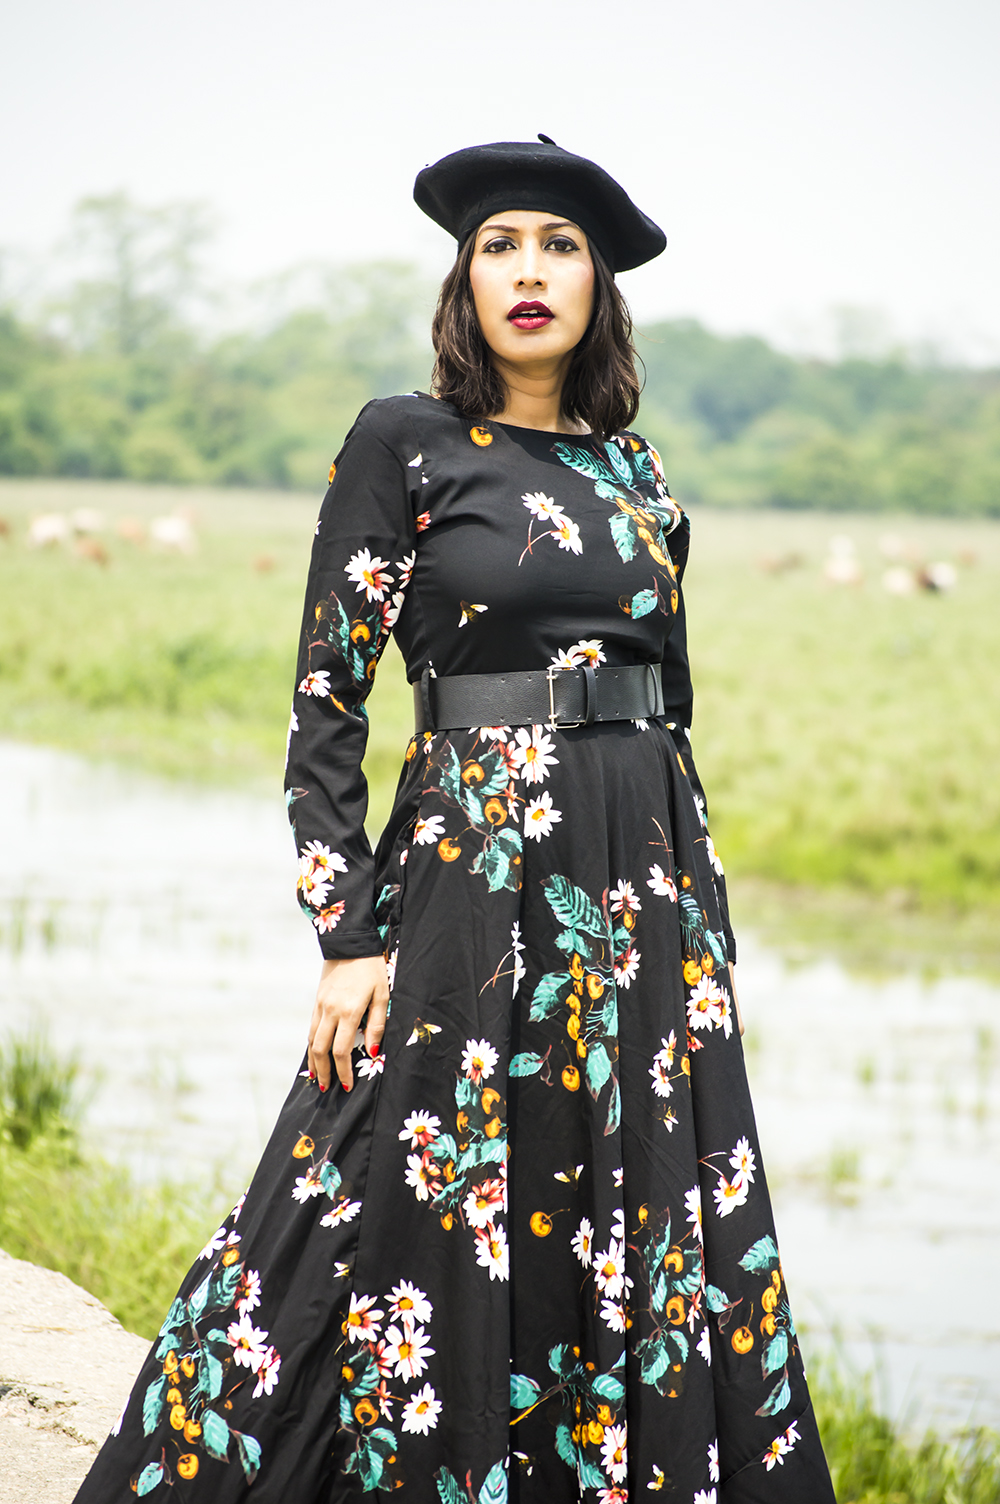 Floral Dresses, Fashion, Style, Fashion Blogger, Maxi Dress, Street Style-2